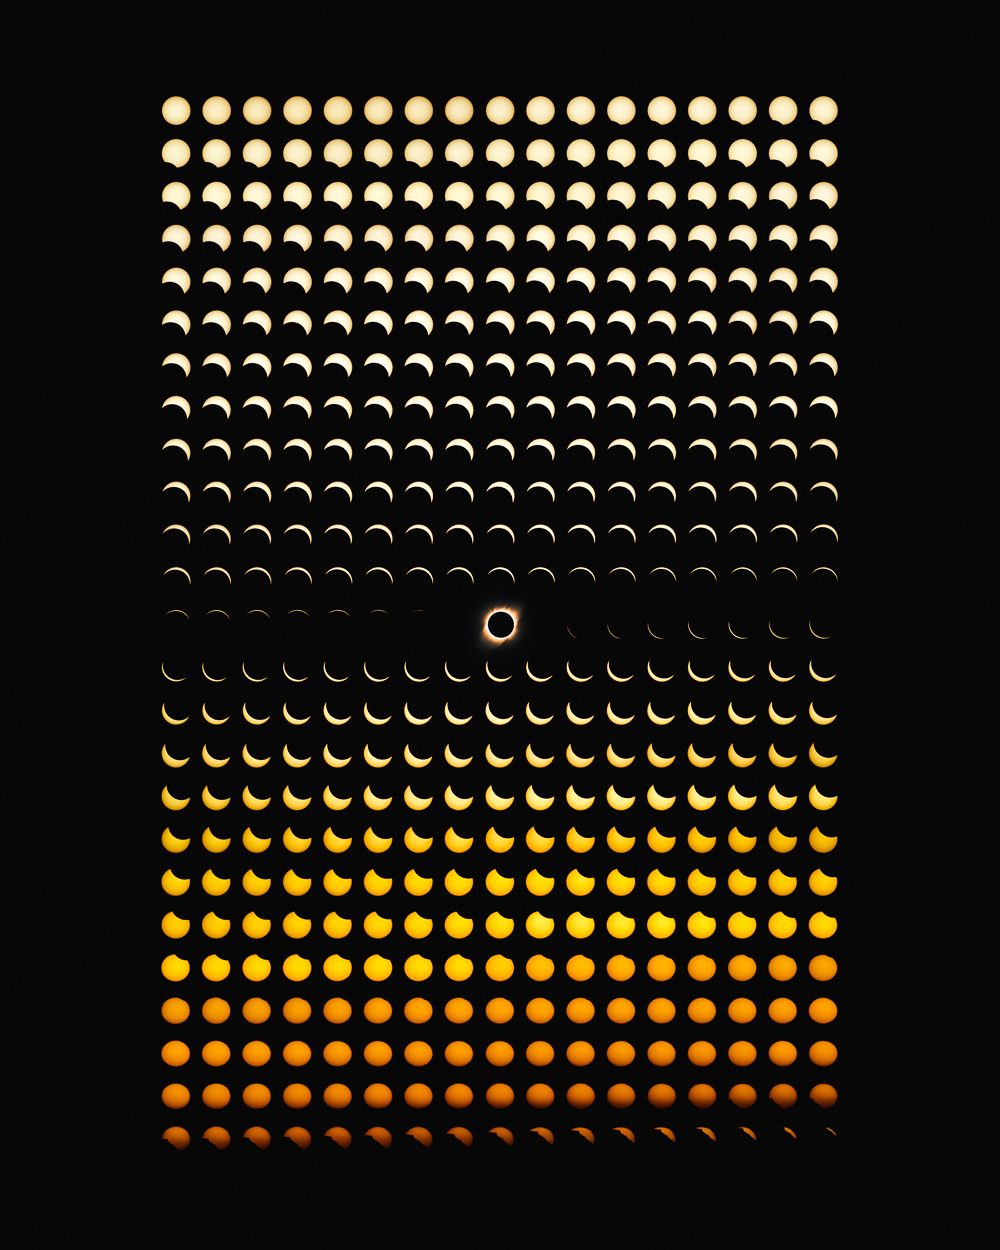 Chart-Like Composite Photographs by Dan Marker-Moore Show the Progression of the 2019 Solar Eclipse